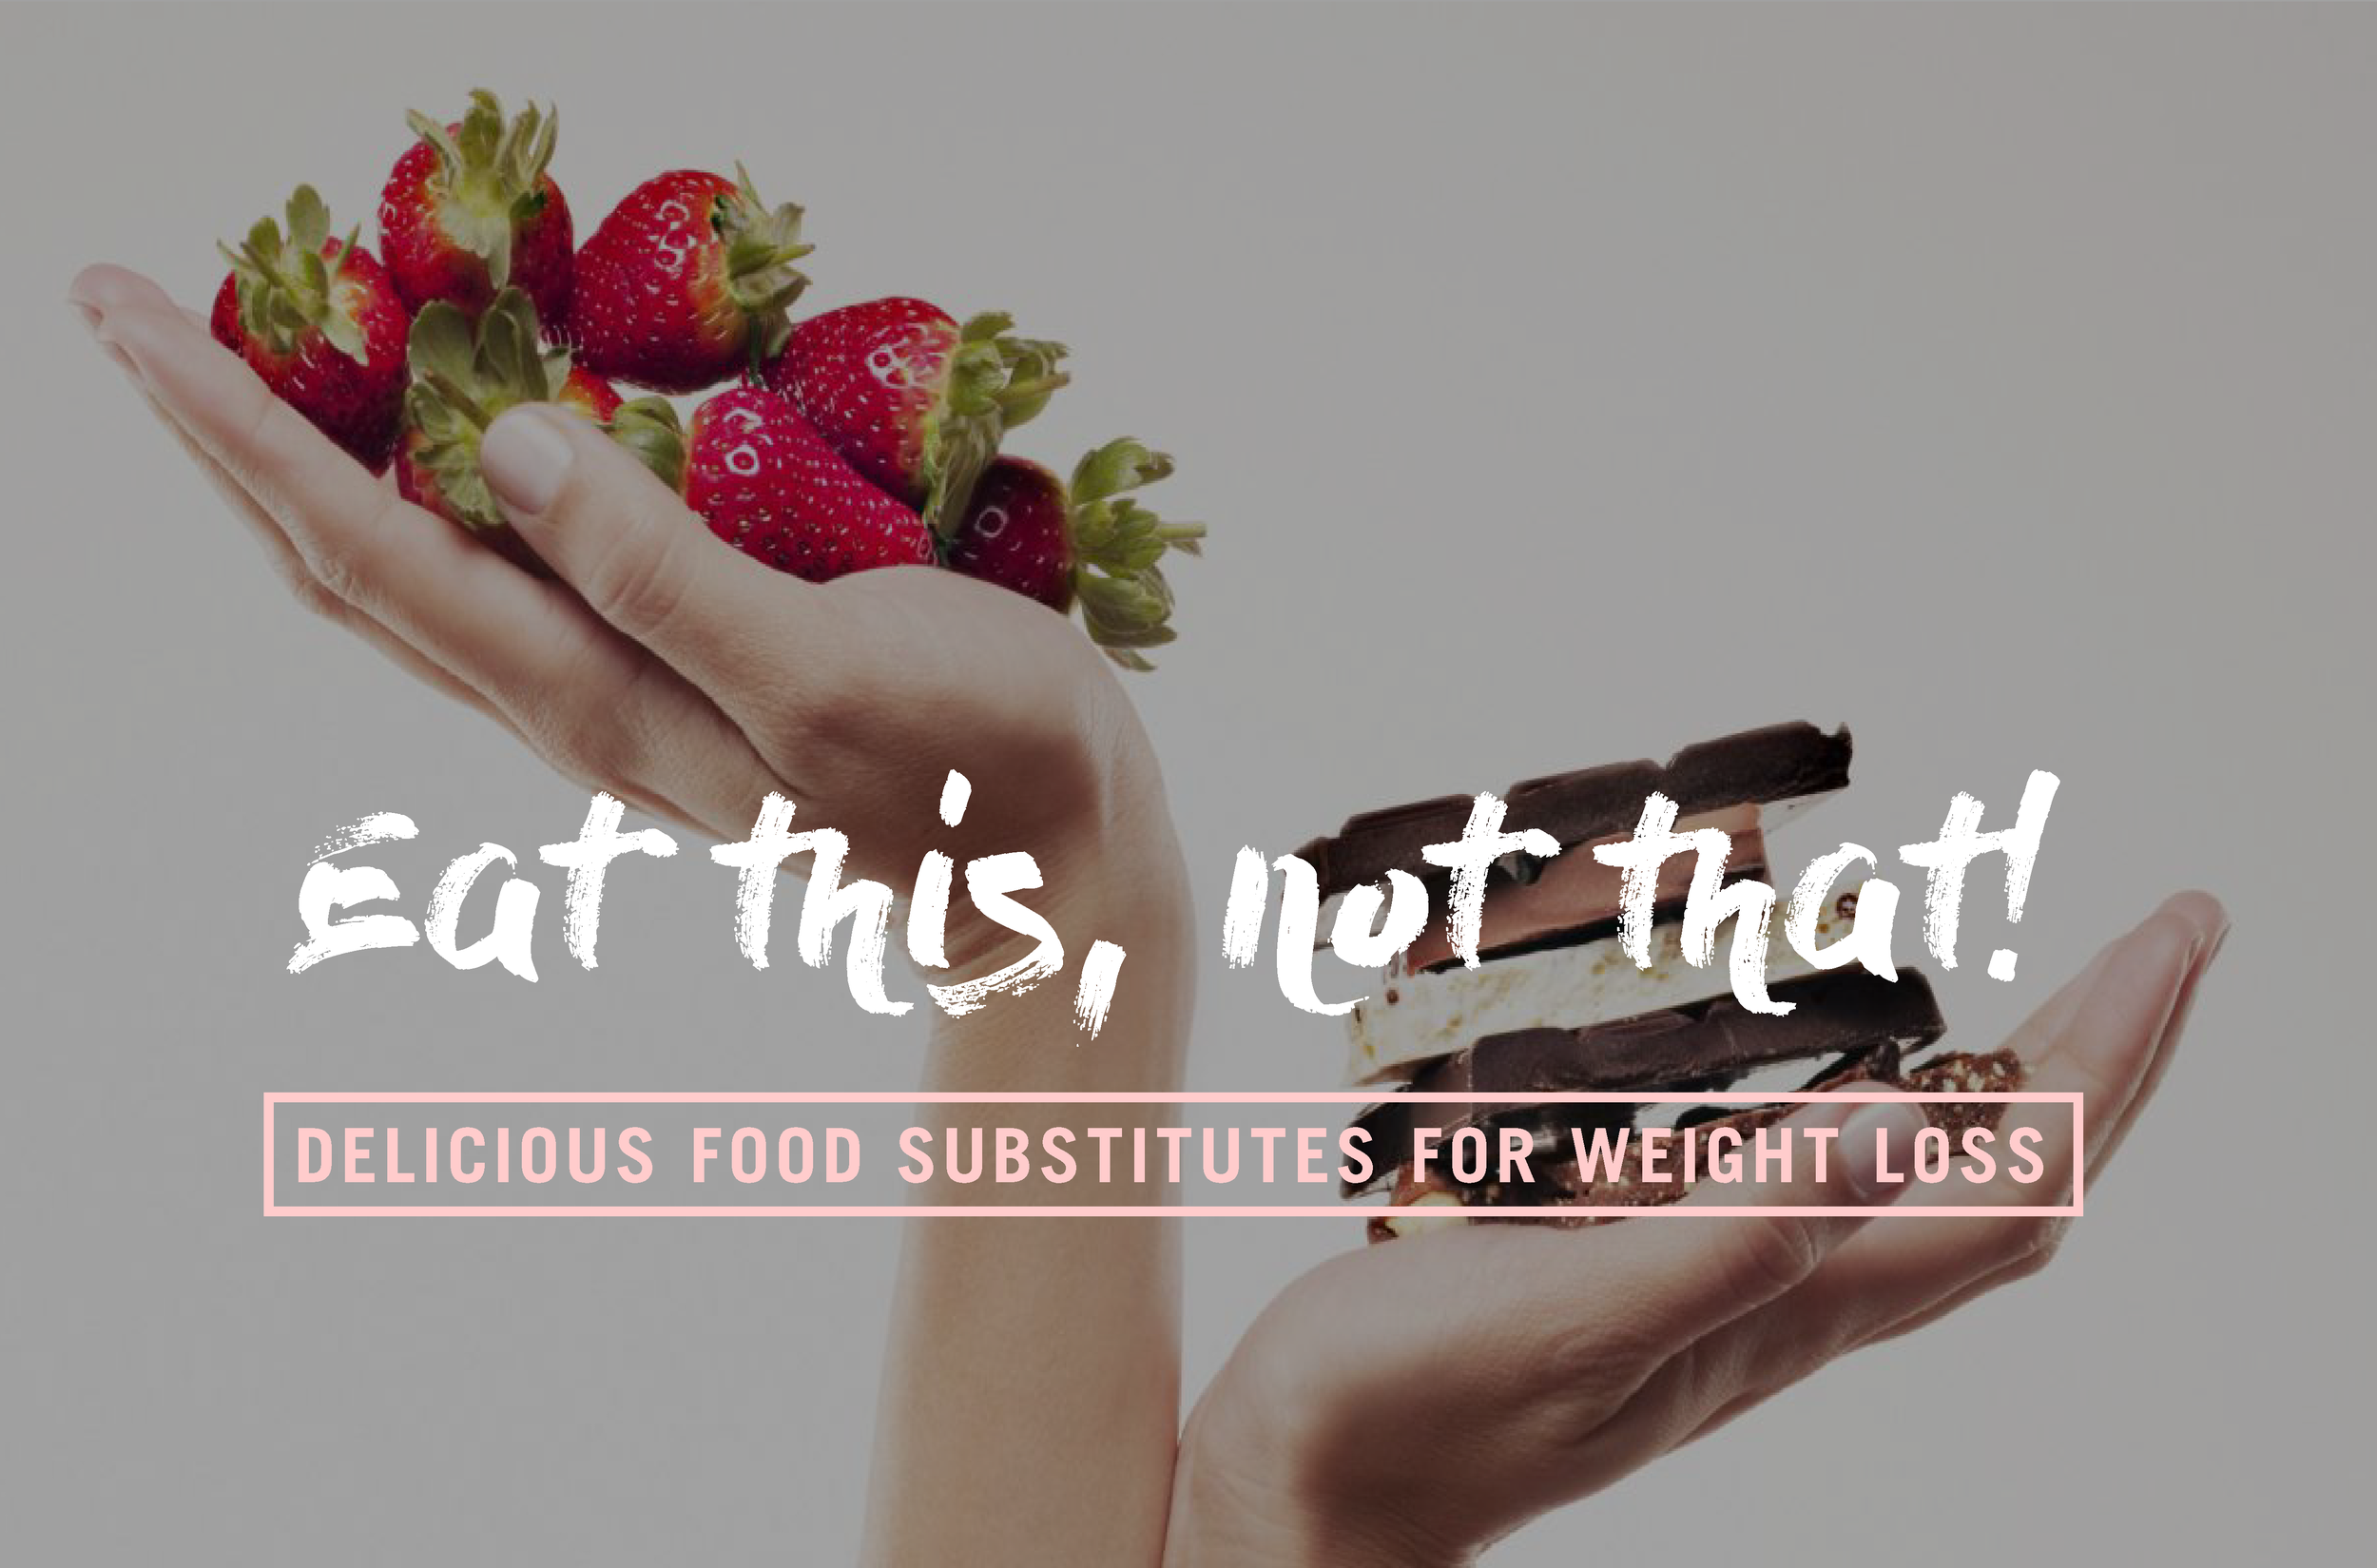 delicious-food substitutes-for-weight-loss.png